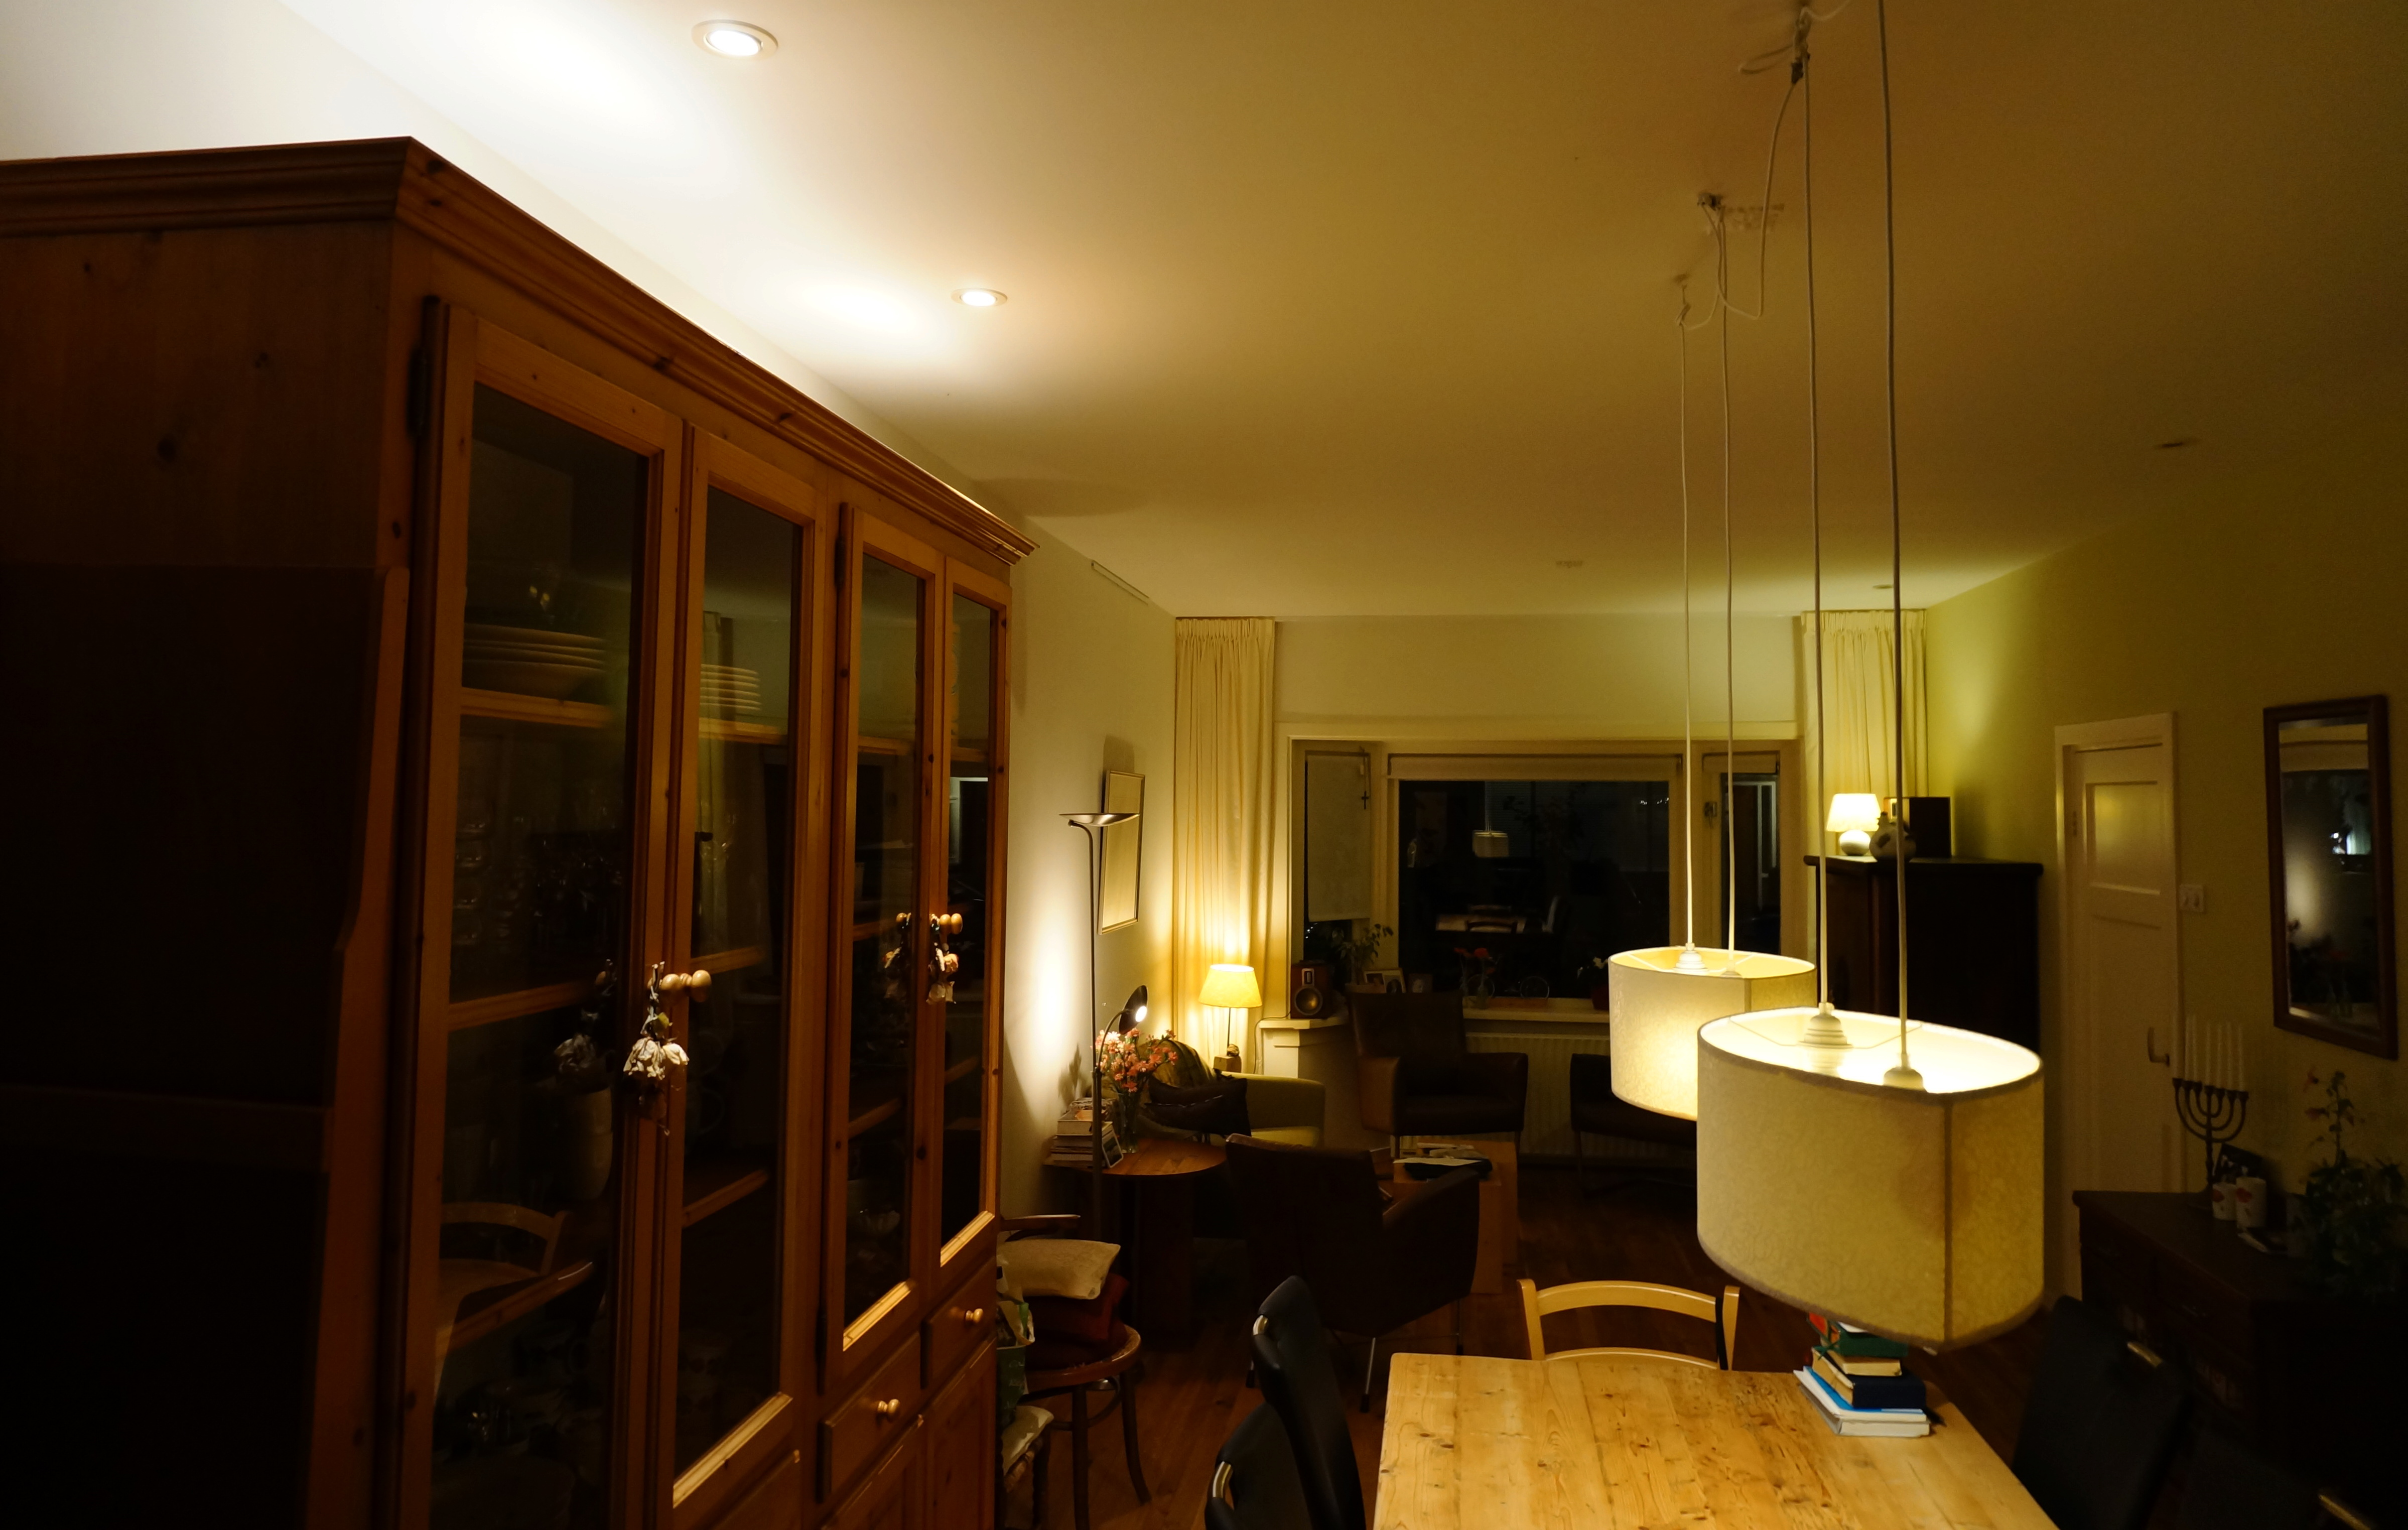 Lampen Woonkamer Tips Verlichting Woonkamer Cheap Woonkamer Lampen Cool Plafond